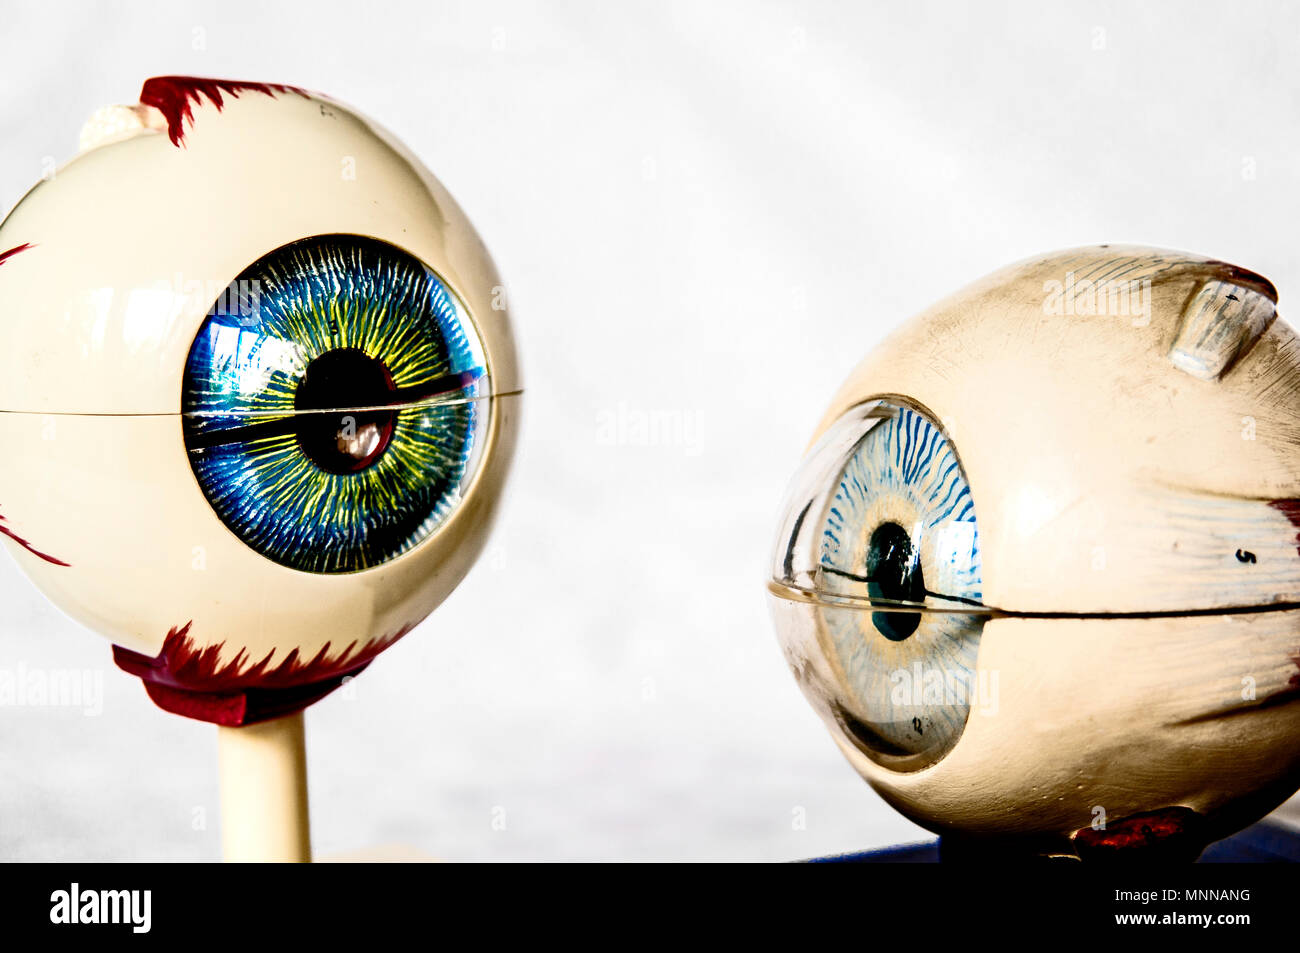 anatomical model: eyes, anatomisches model: augen Stock Photo ...